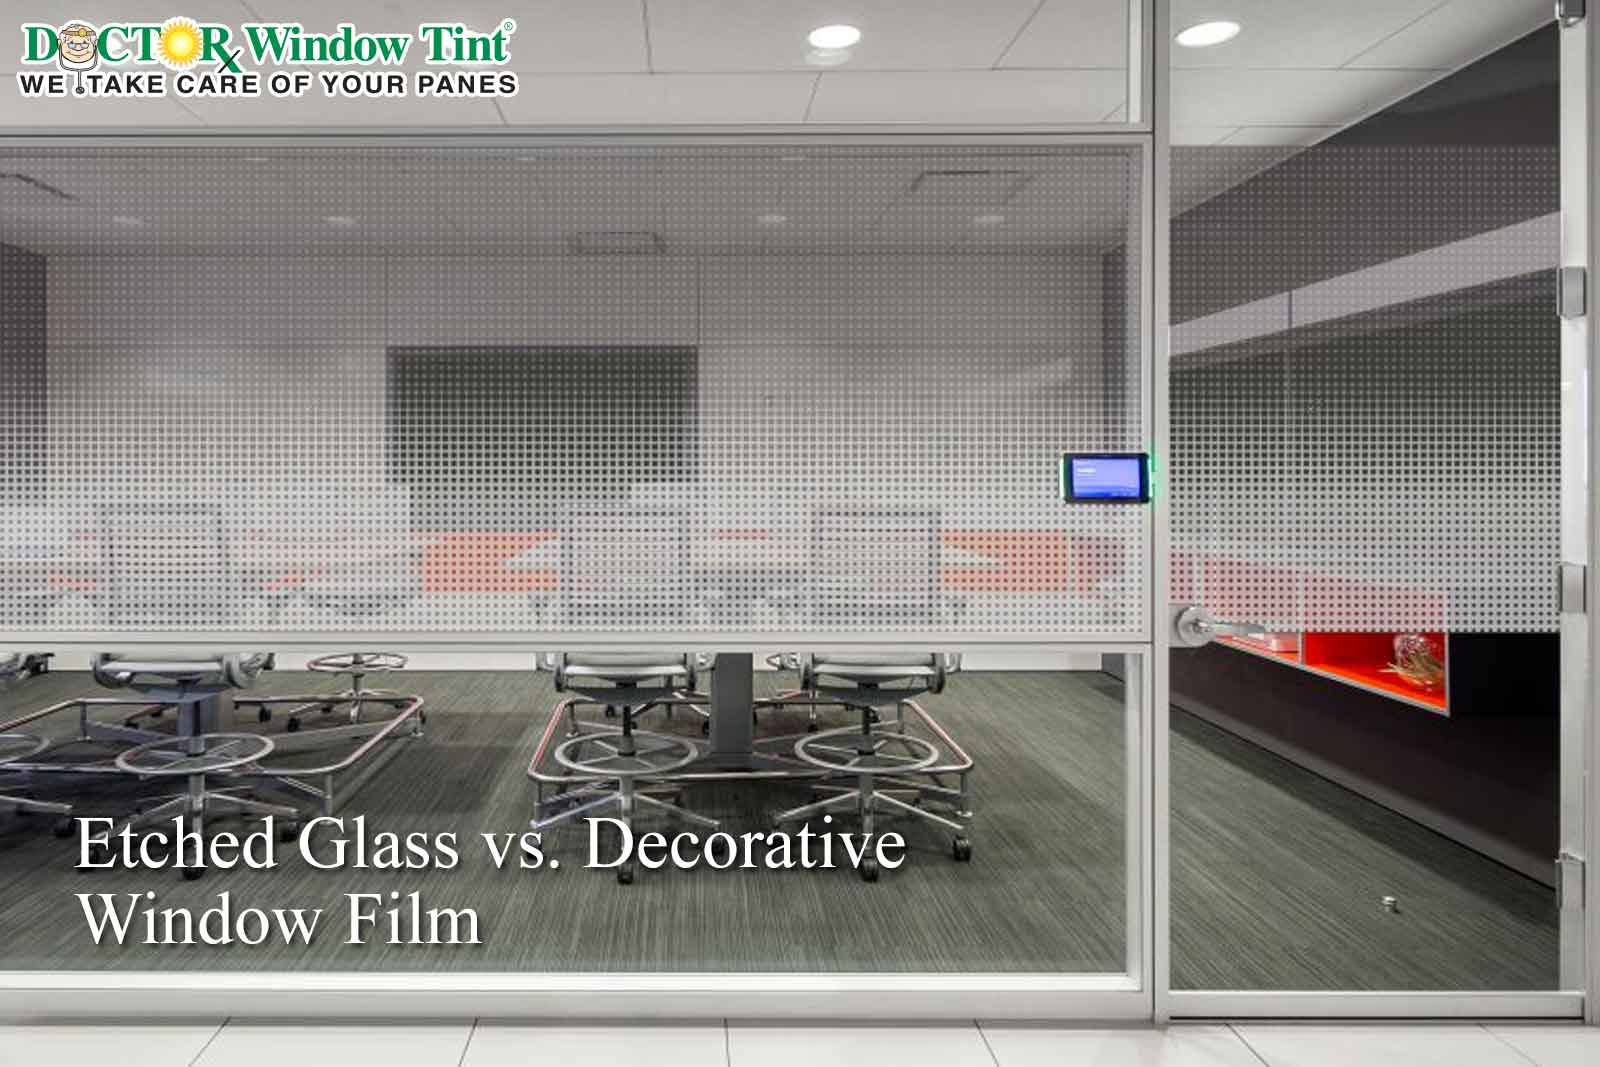 Etched Glass vs. Decorative Window Film